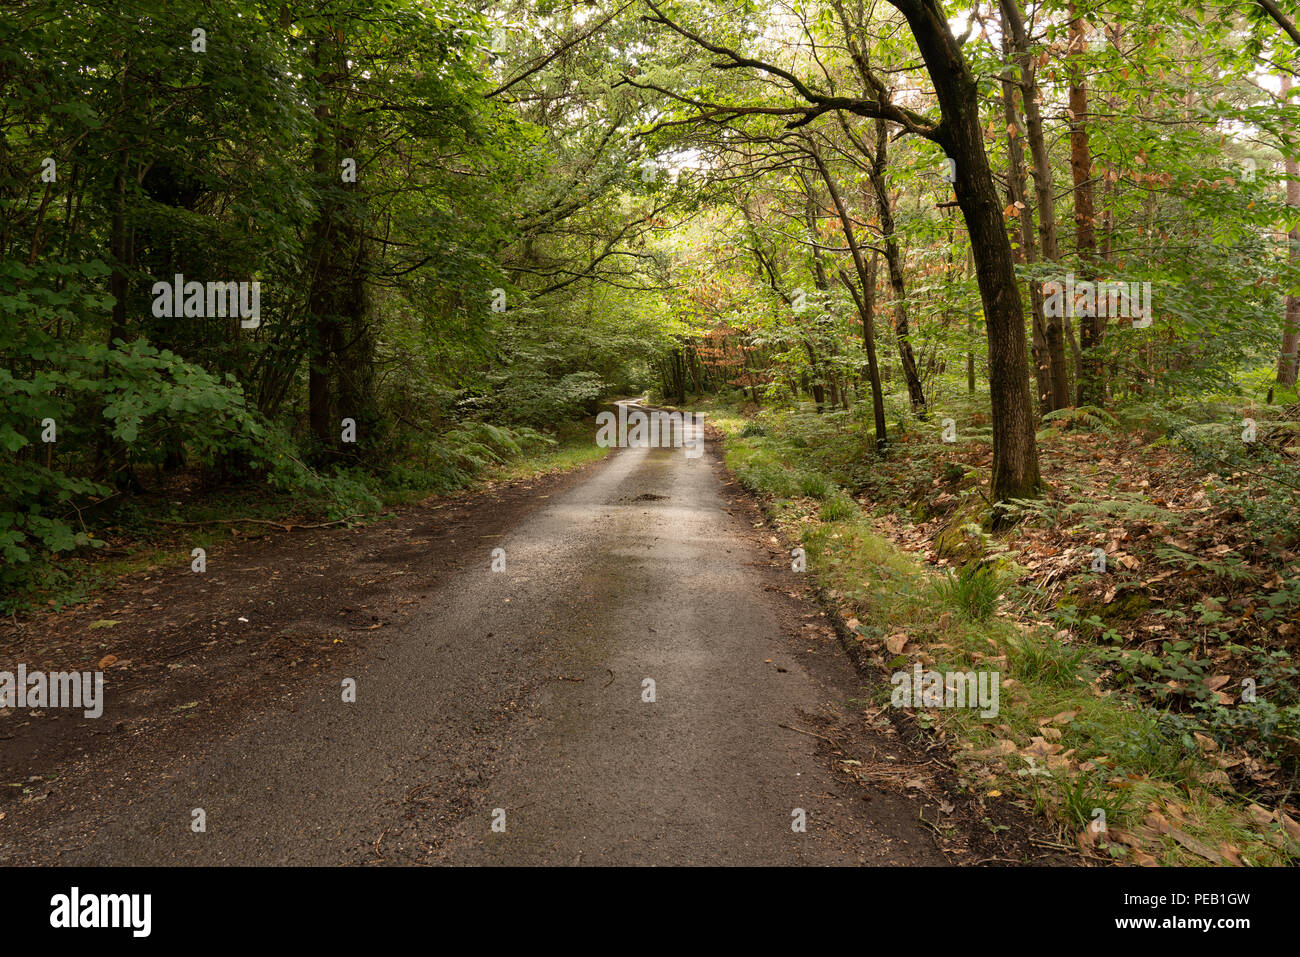 Binsted Lane, Arundel, West Sussex: Option 5A Arundel Bypass - a controversial dual carriageway will cut across ancient pastures and woodland. - Stock Image